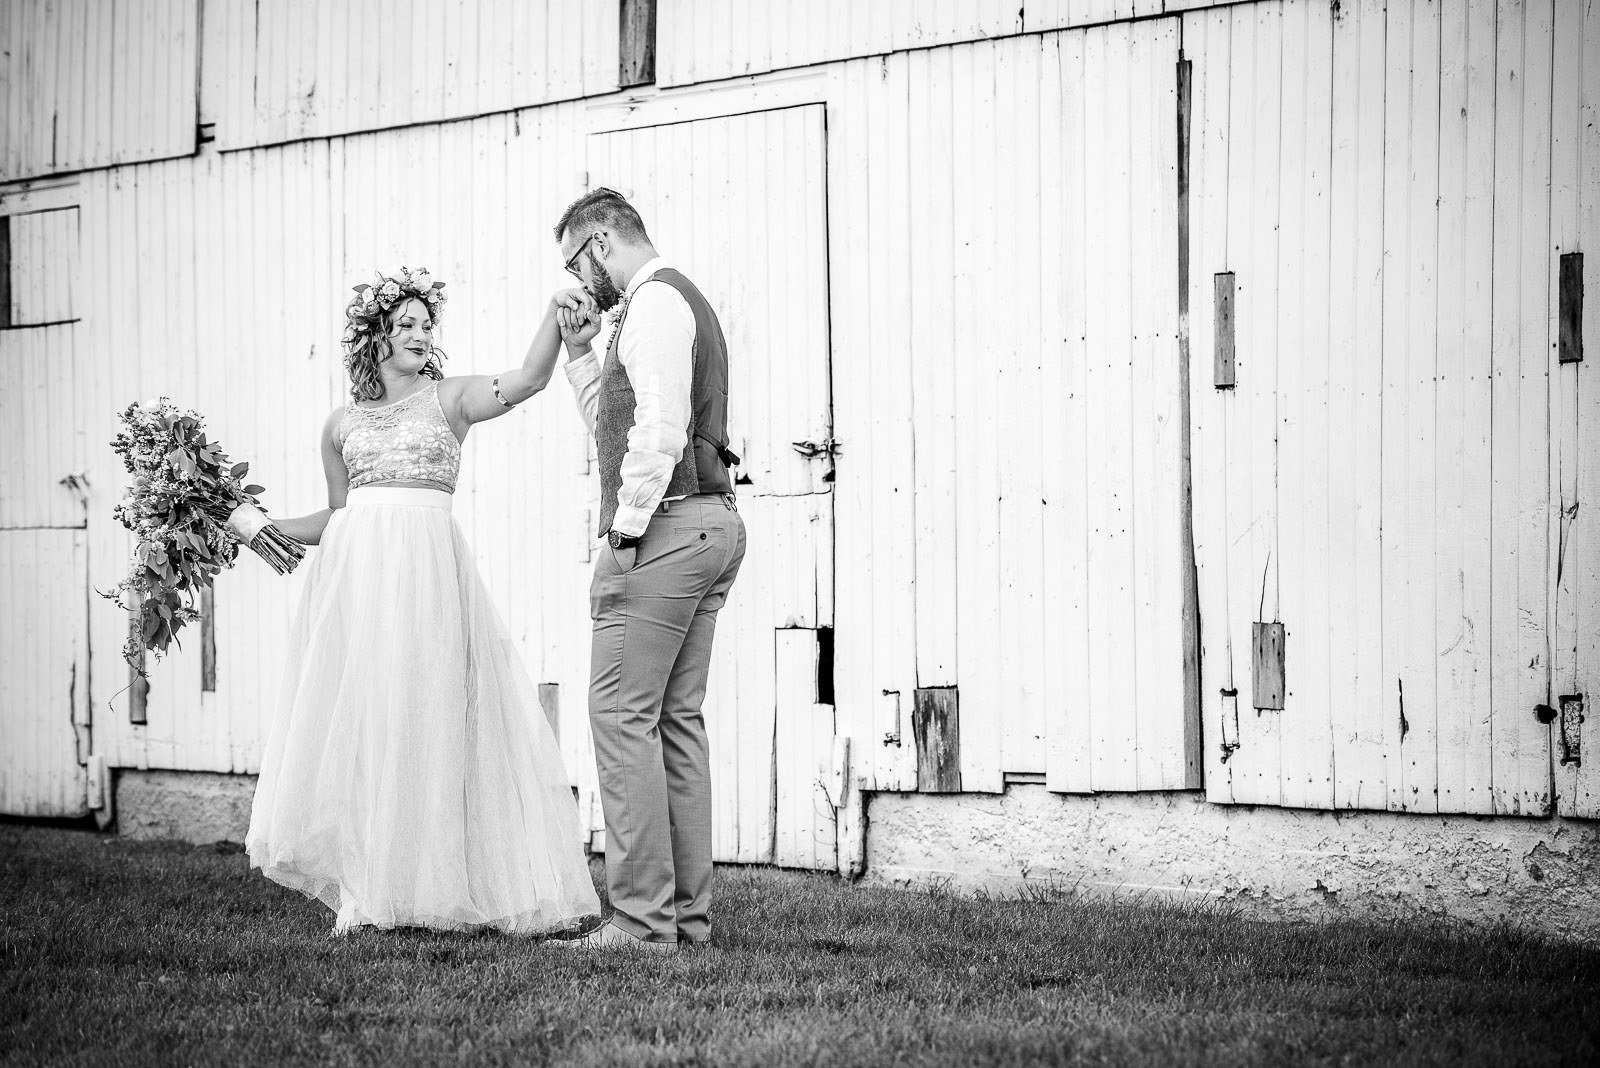 Eric_and_Christy_Photography_Blog_Wedding_Lauren_Jon-8